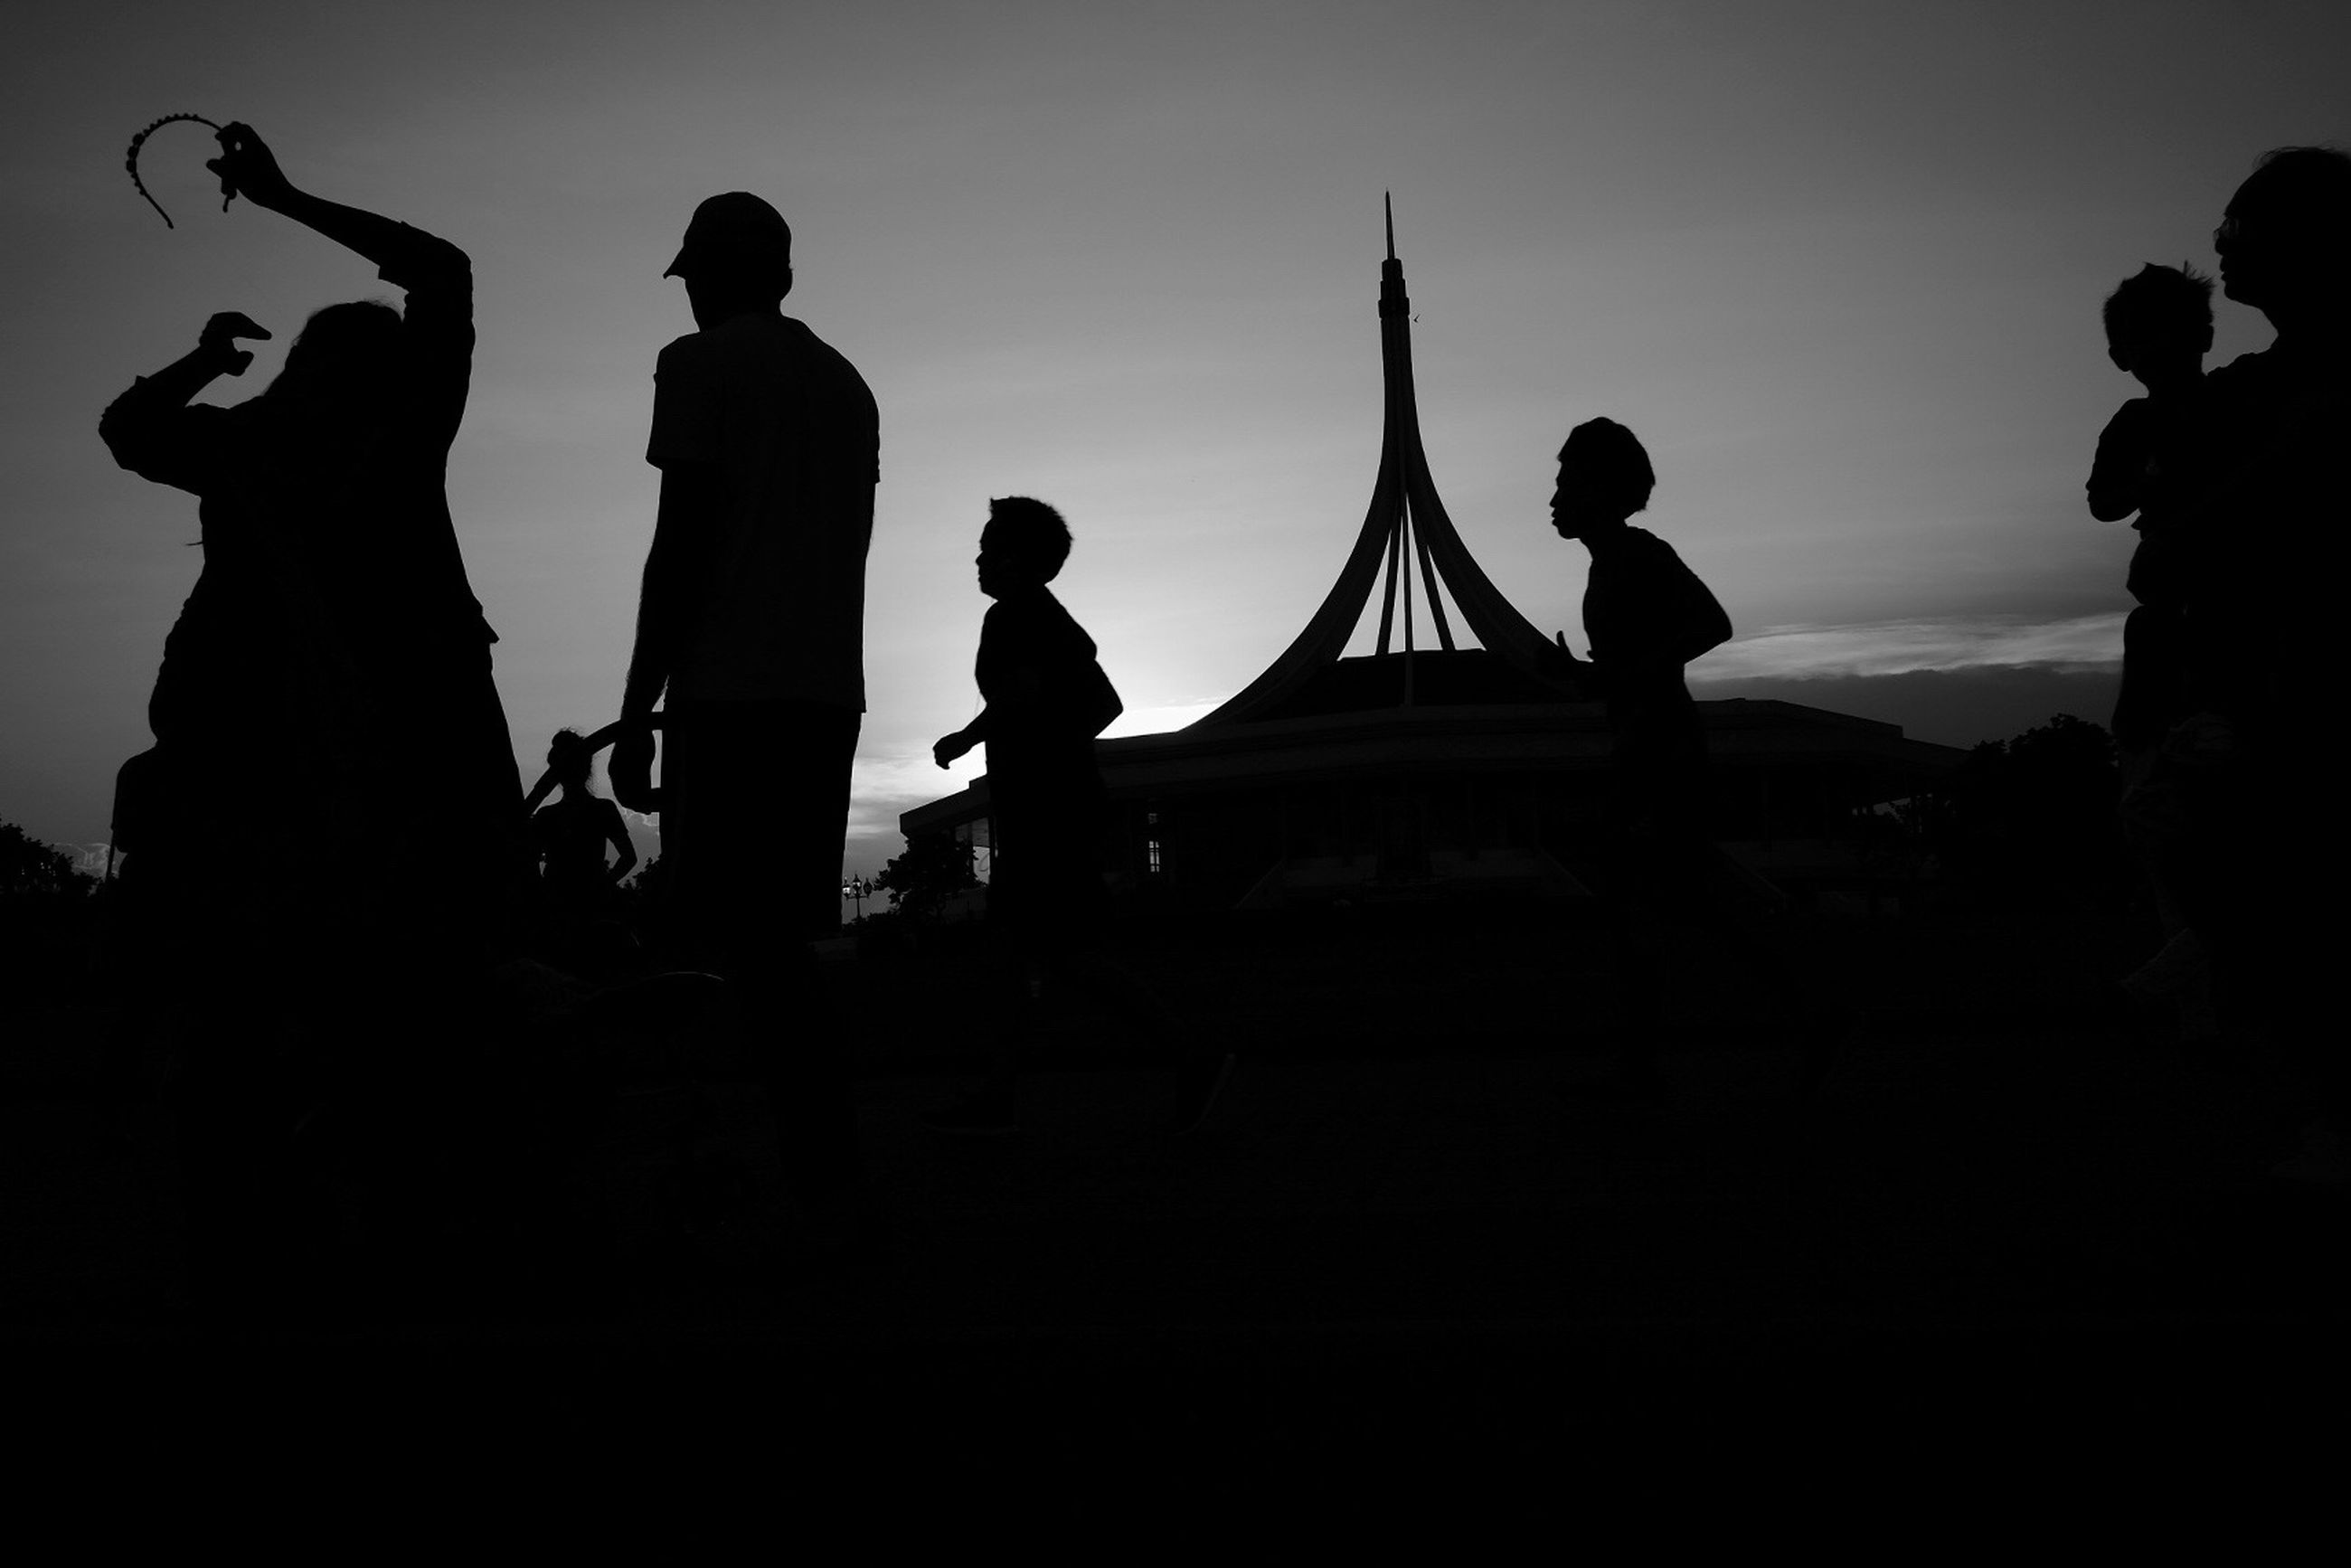 silhouette, arts culture and entertainment, men, togetherness, leisure activity, outdoors, real people, sky, amusement park ride, night, people